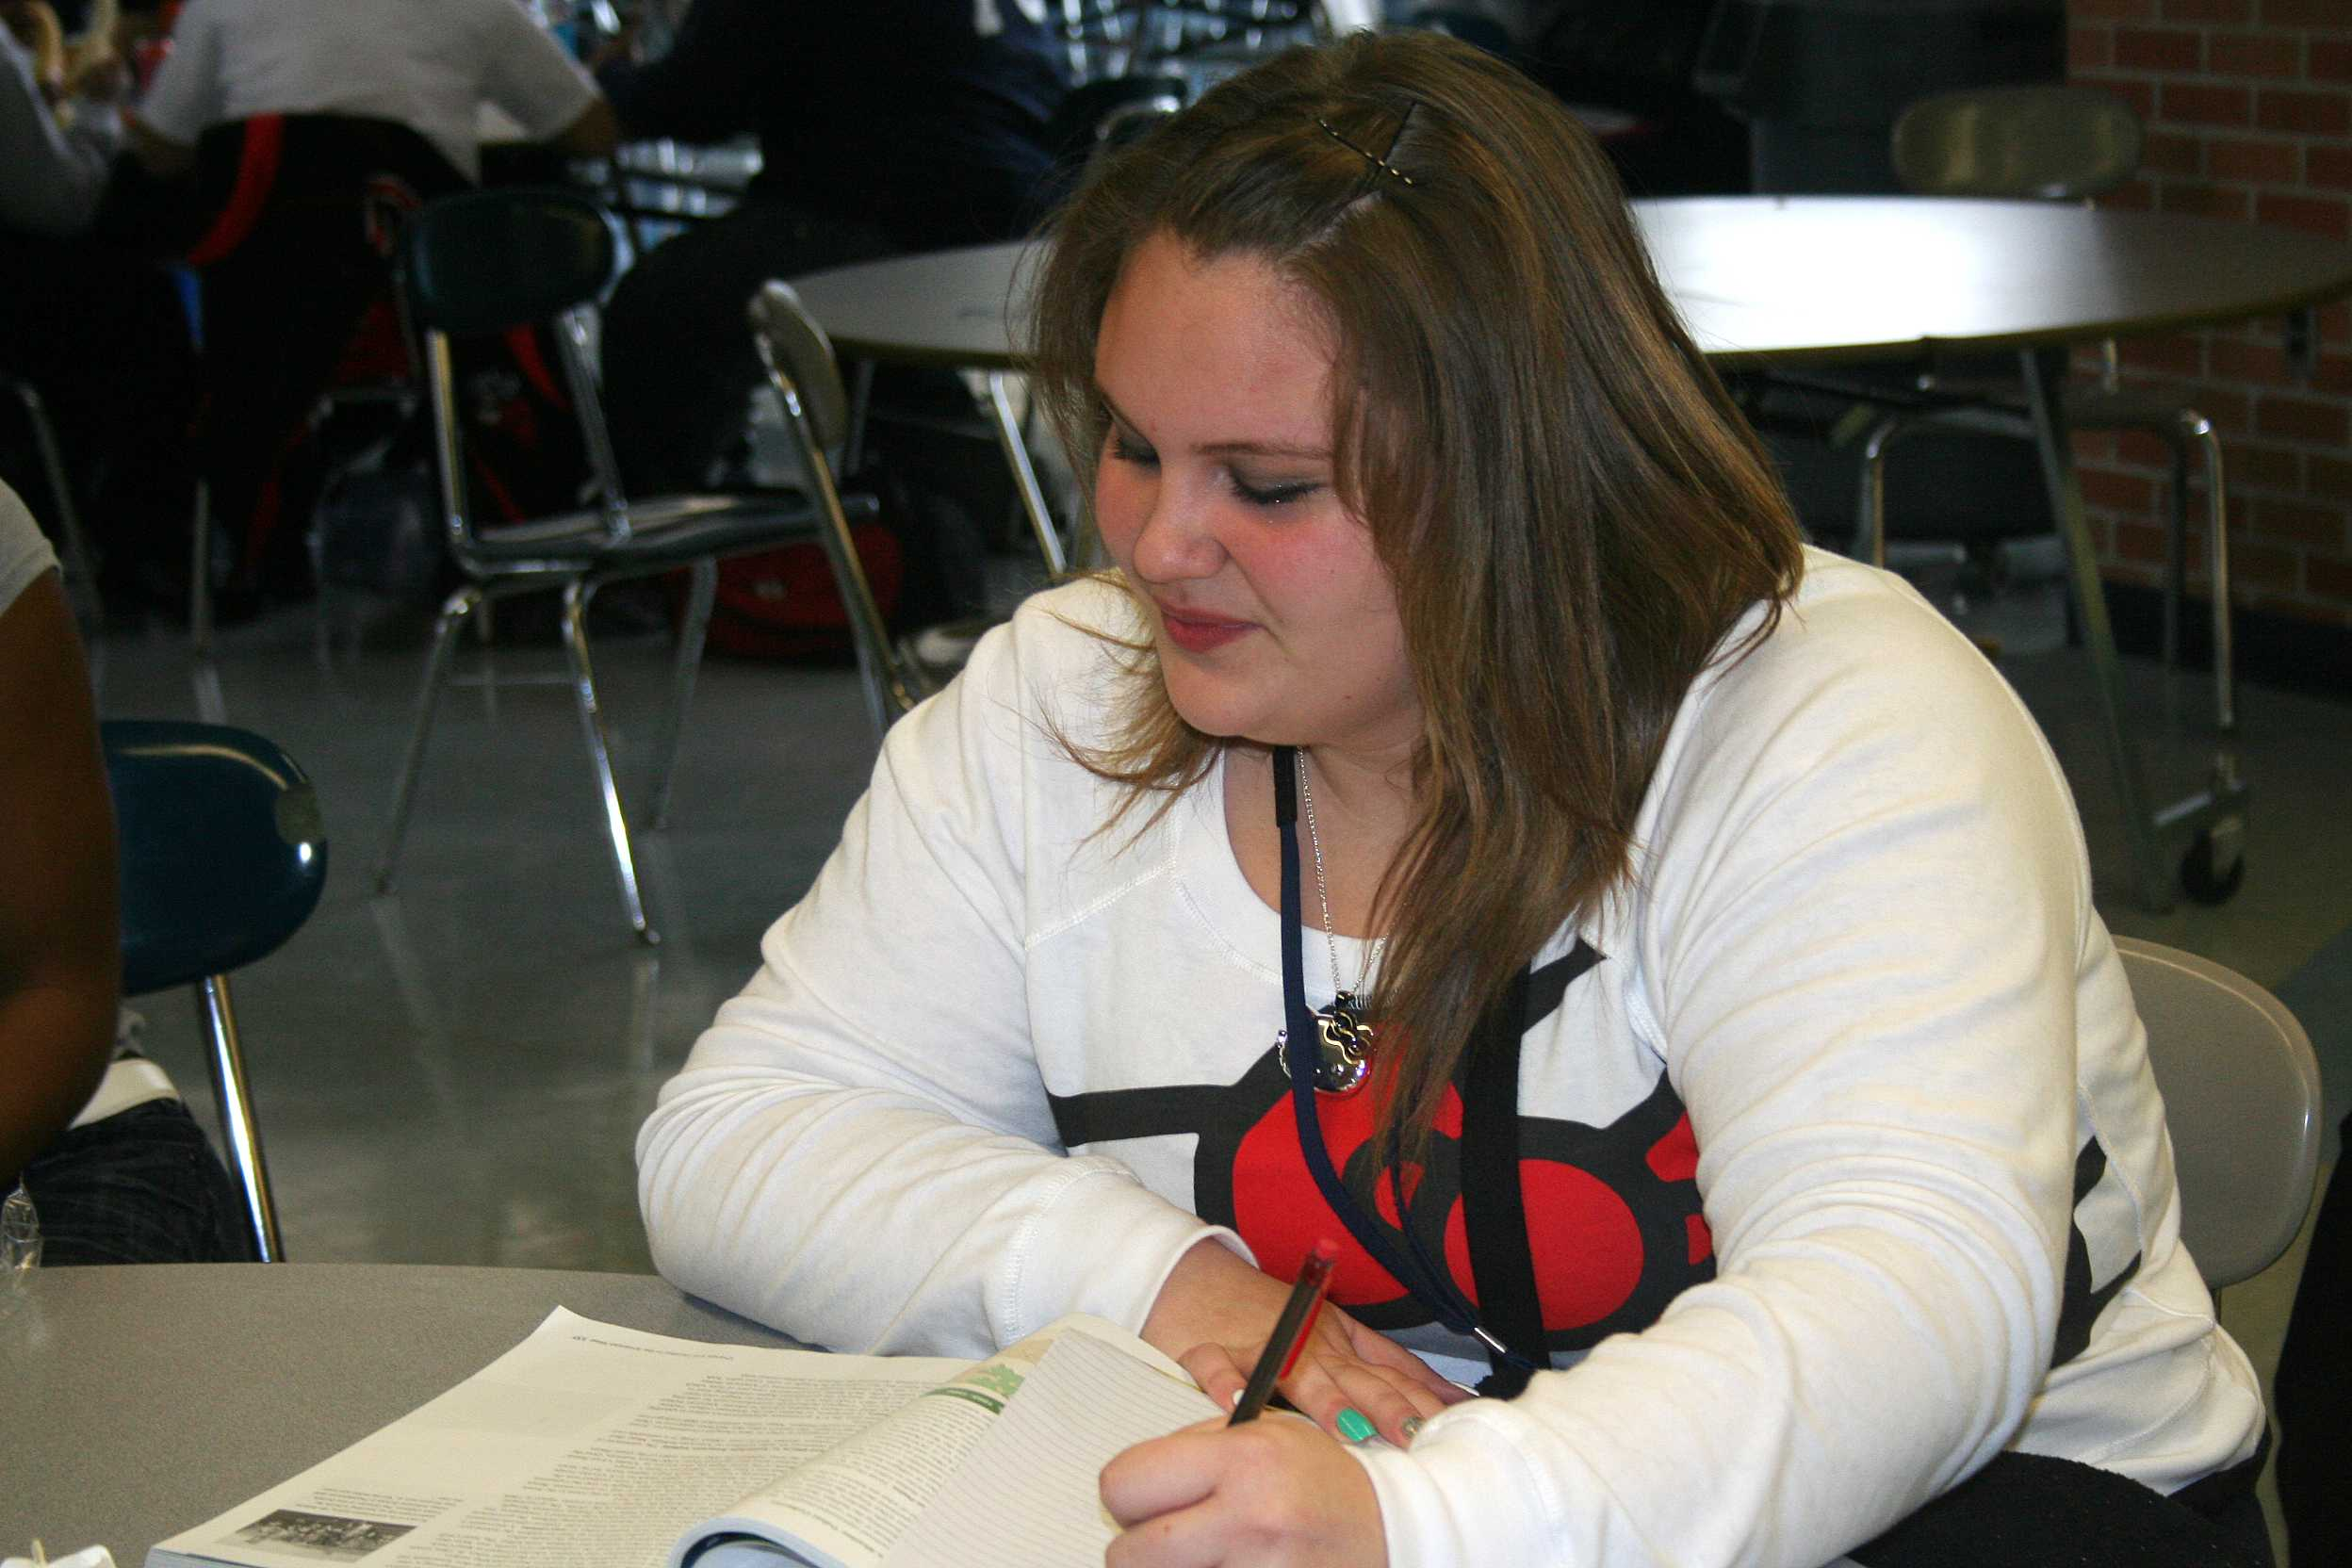 Freshmen Jasmine Brooks works during her lunch. As a freshmen she is worried that she won't get her schoolwork done.